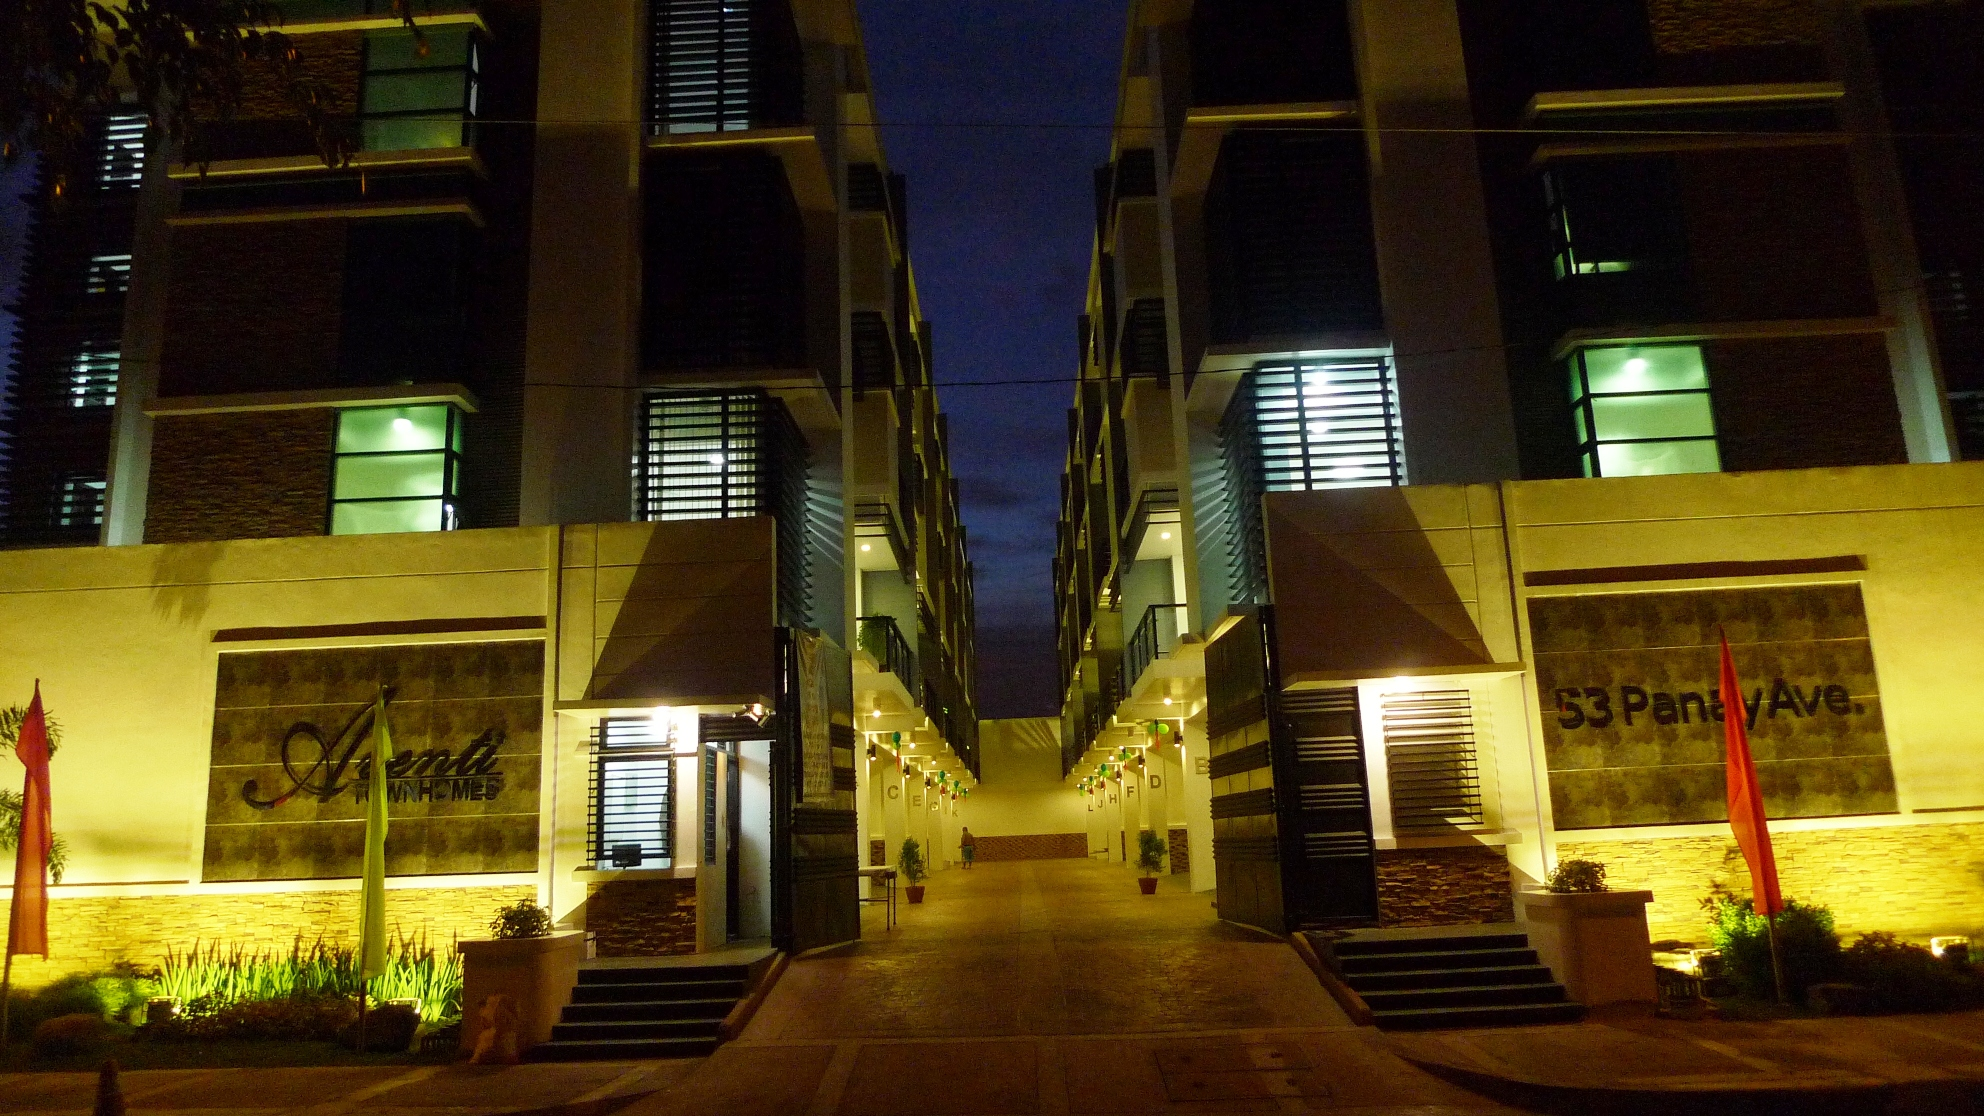 Aventi Townhomes front gate